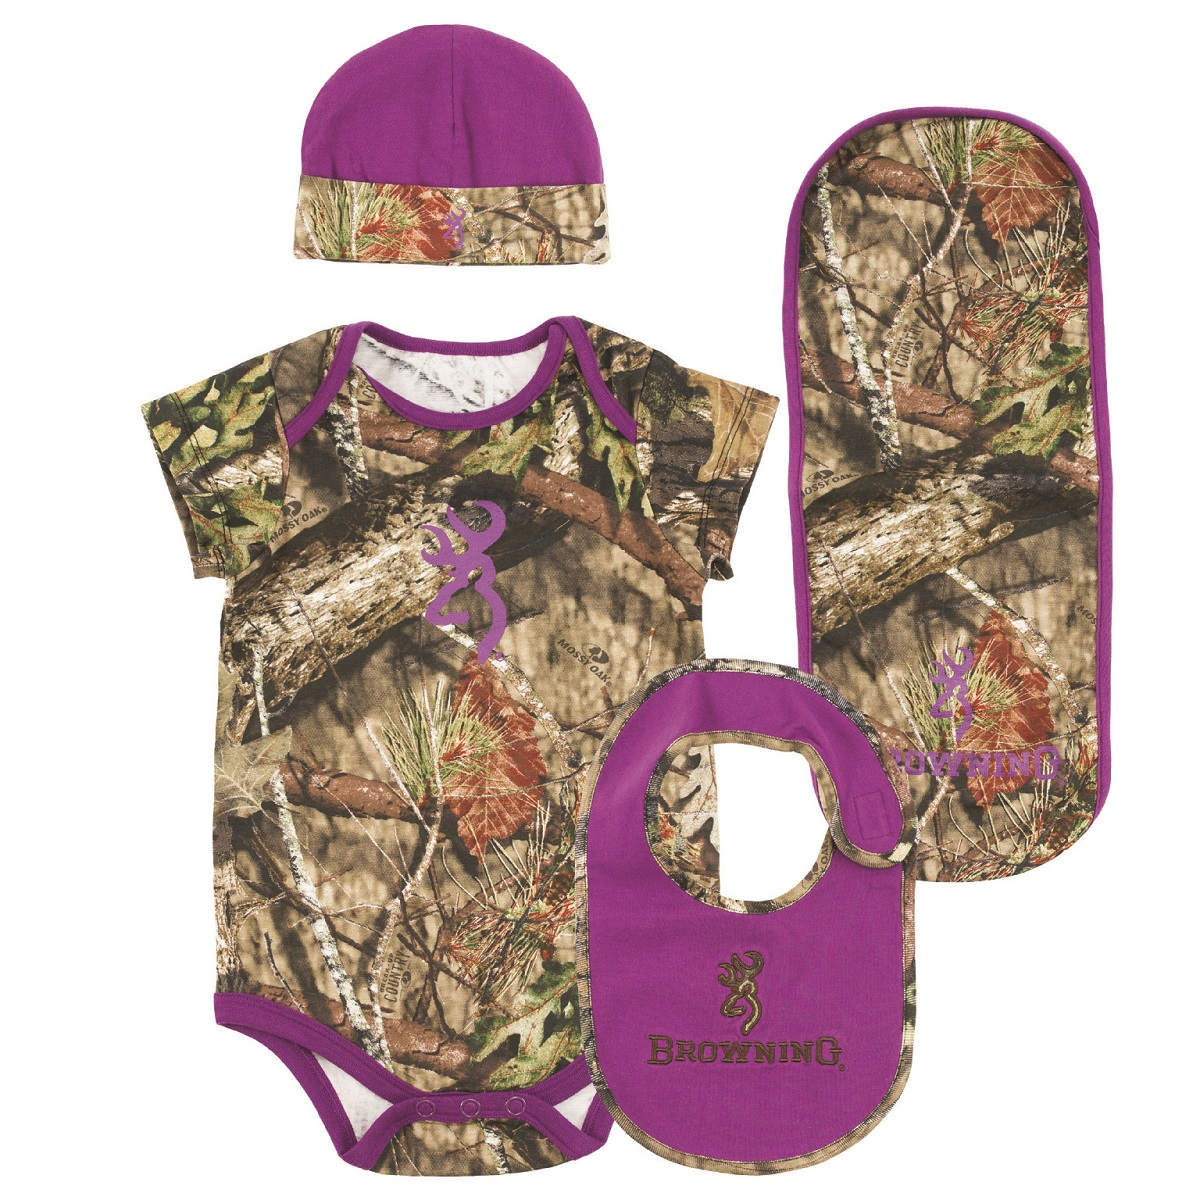 a1967aee49065 Browning Baby Girl Camo Purple Infant Clothes Set